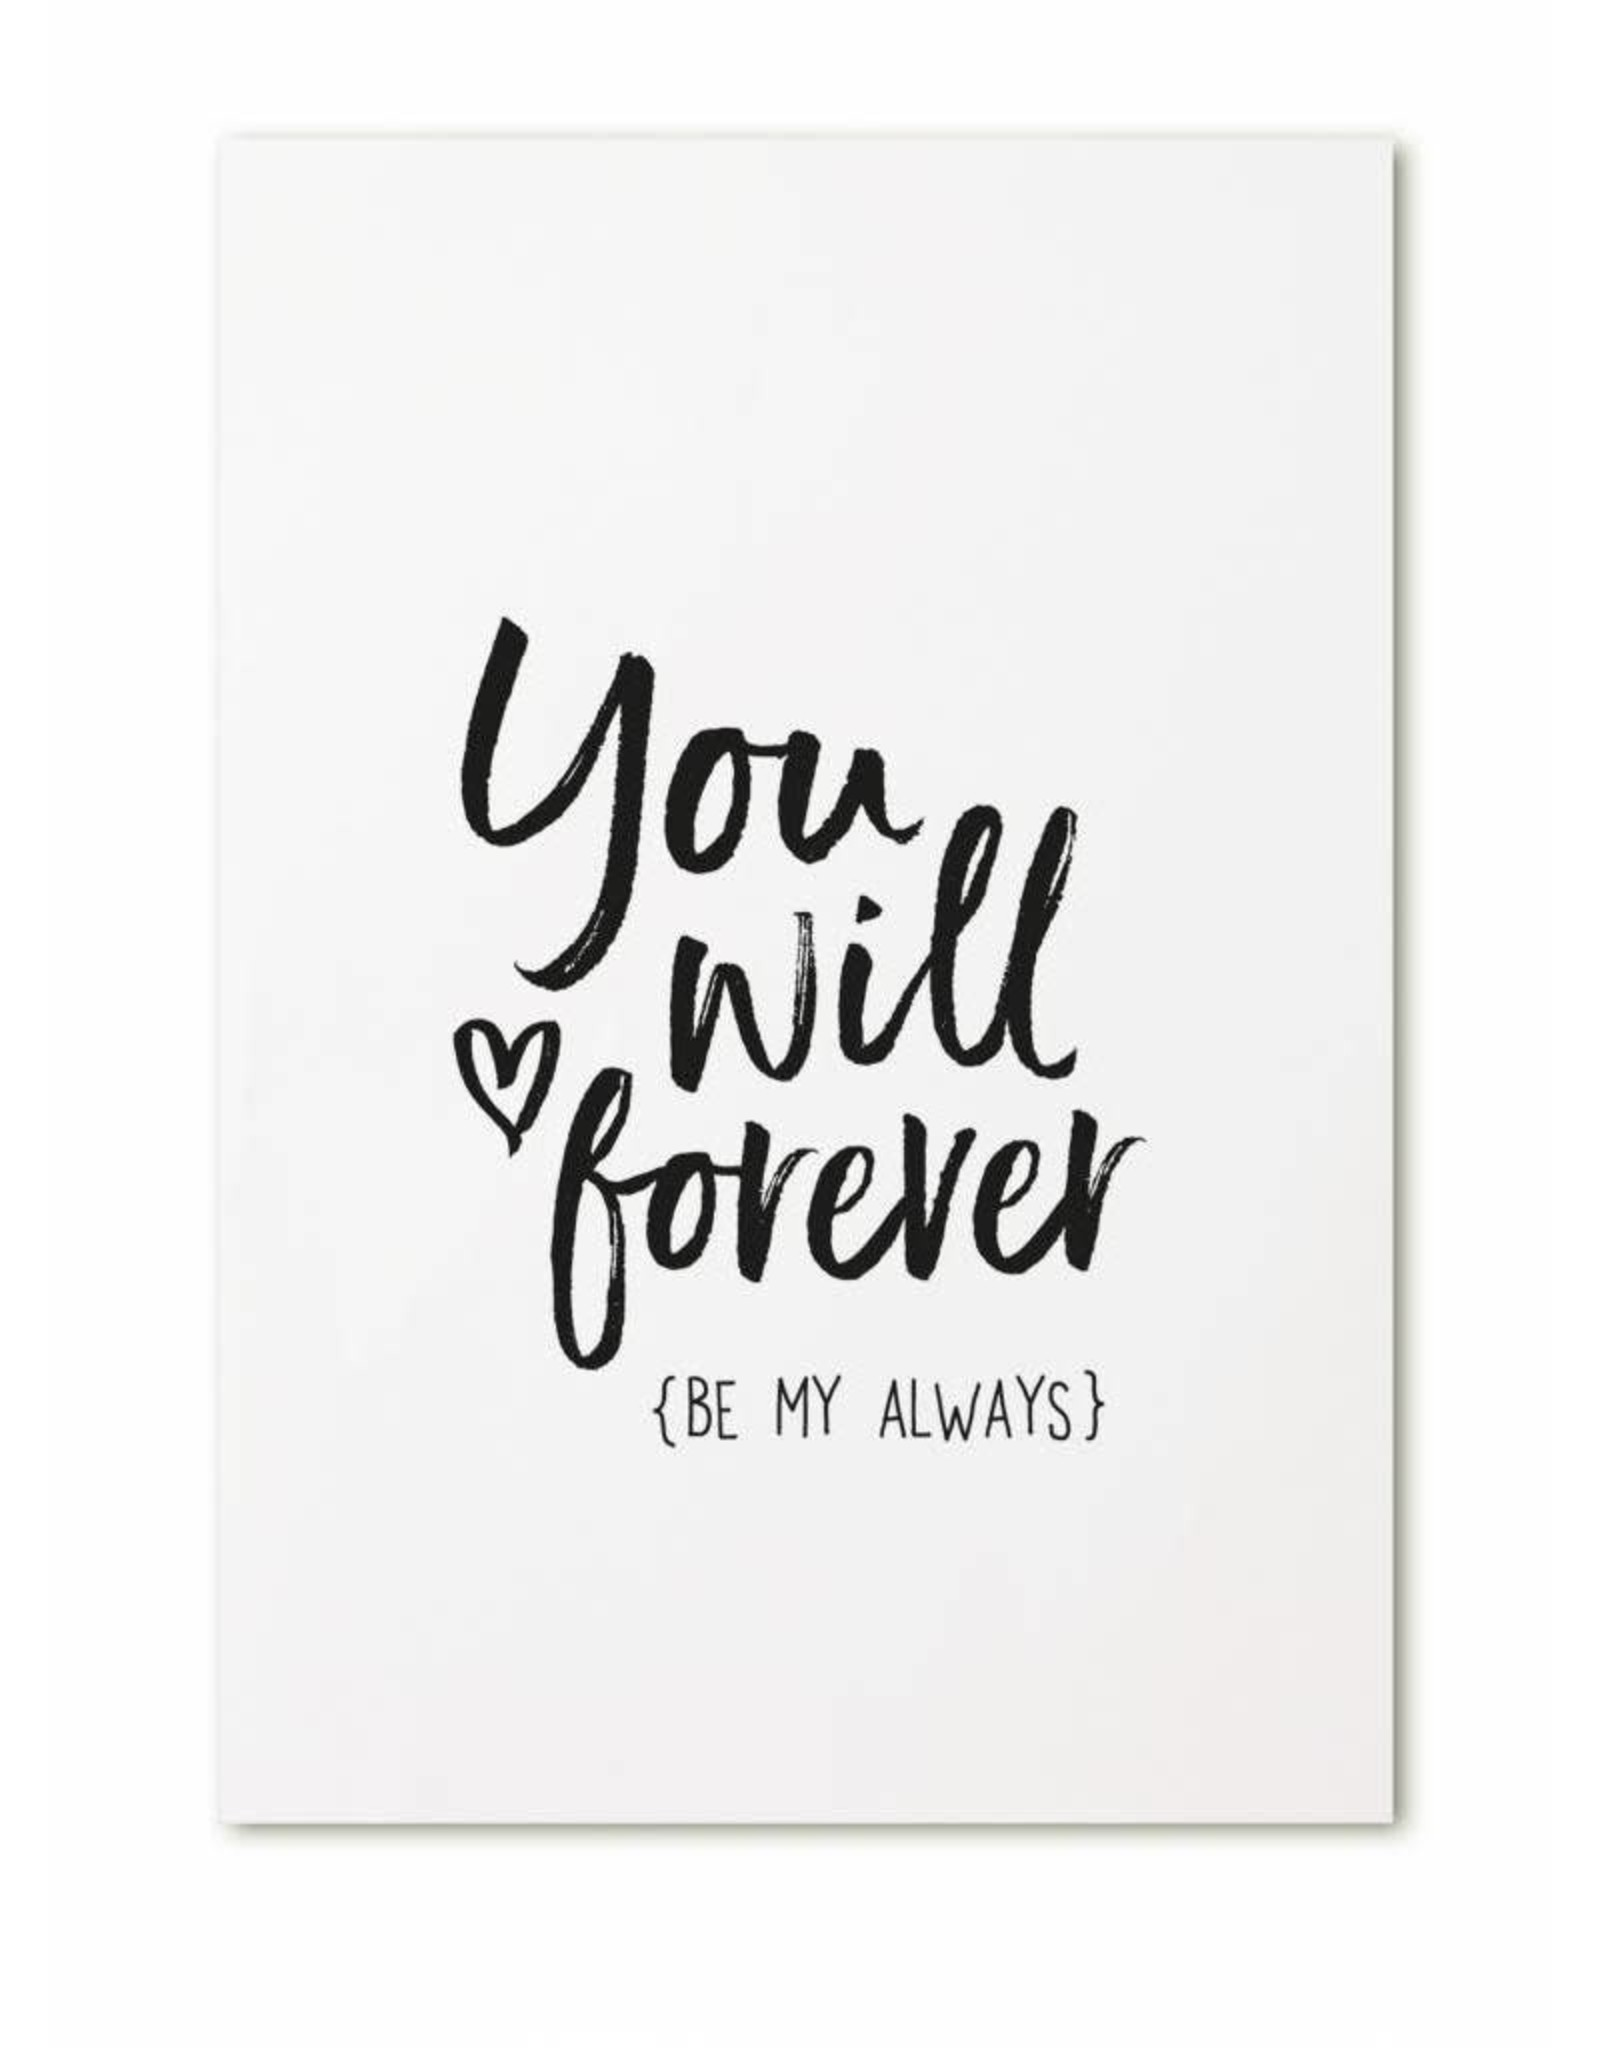 zoedt kaart a6 Zoedt: You will forever (be my always)